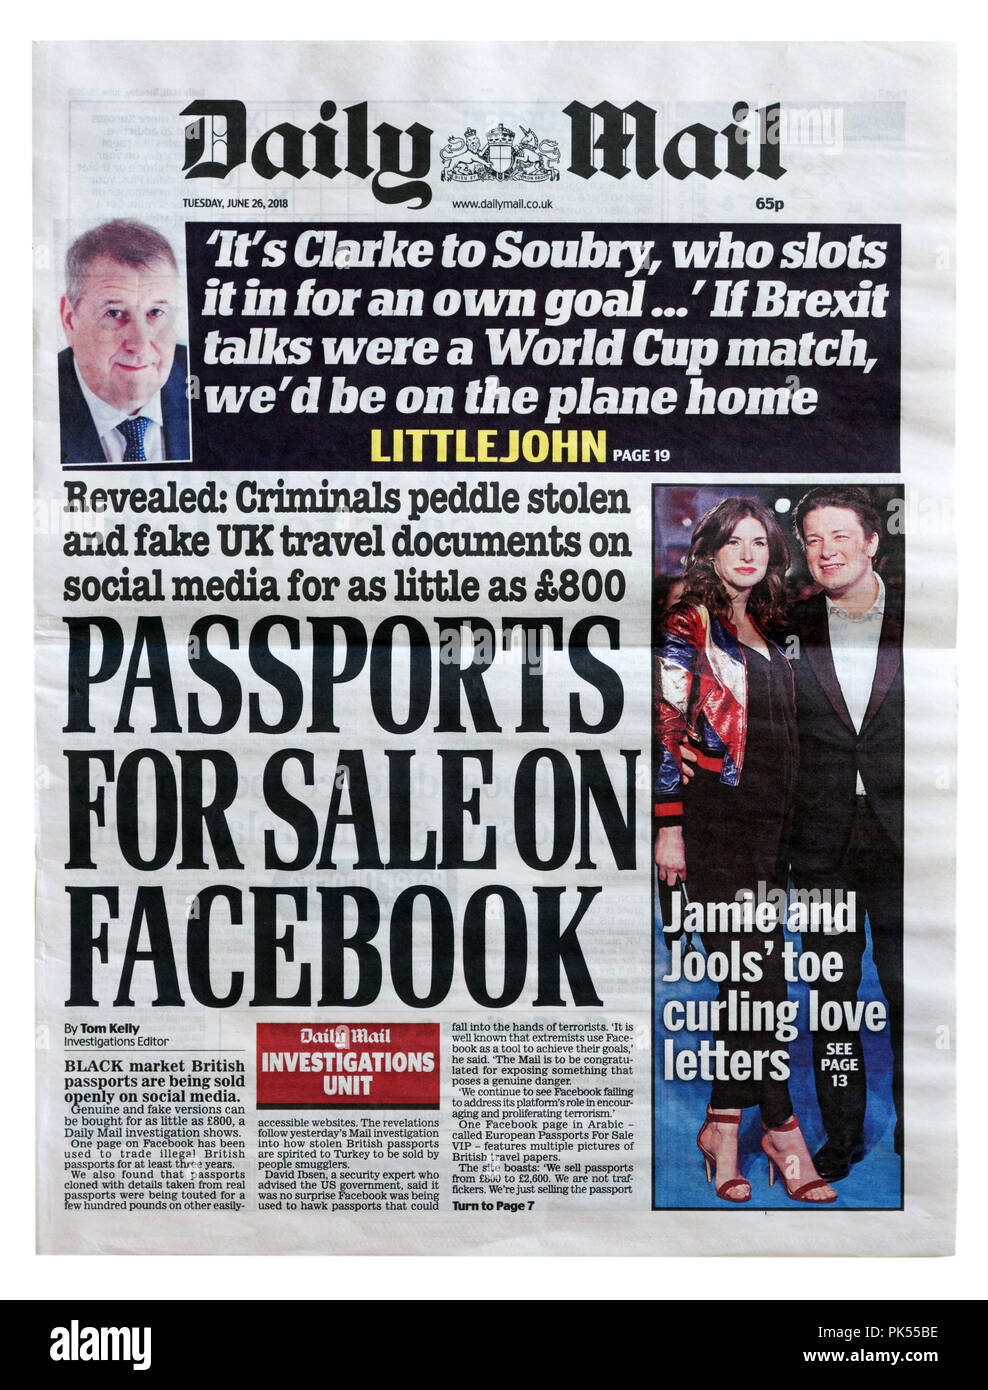 Front page of the Daily Mail with the headline Passports For Sale on Facebook, revealing the sale of stolen passports and ID on social media - Stock Image